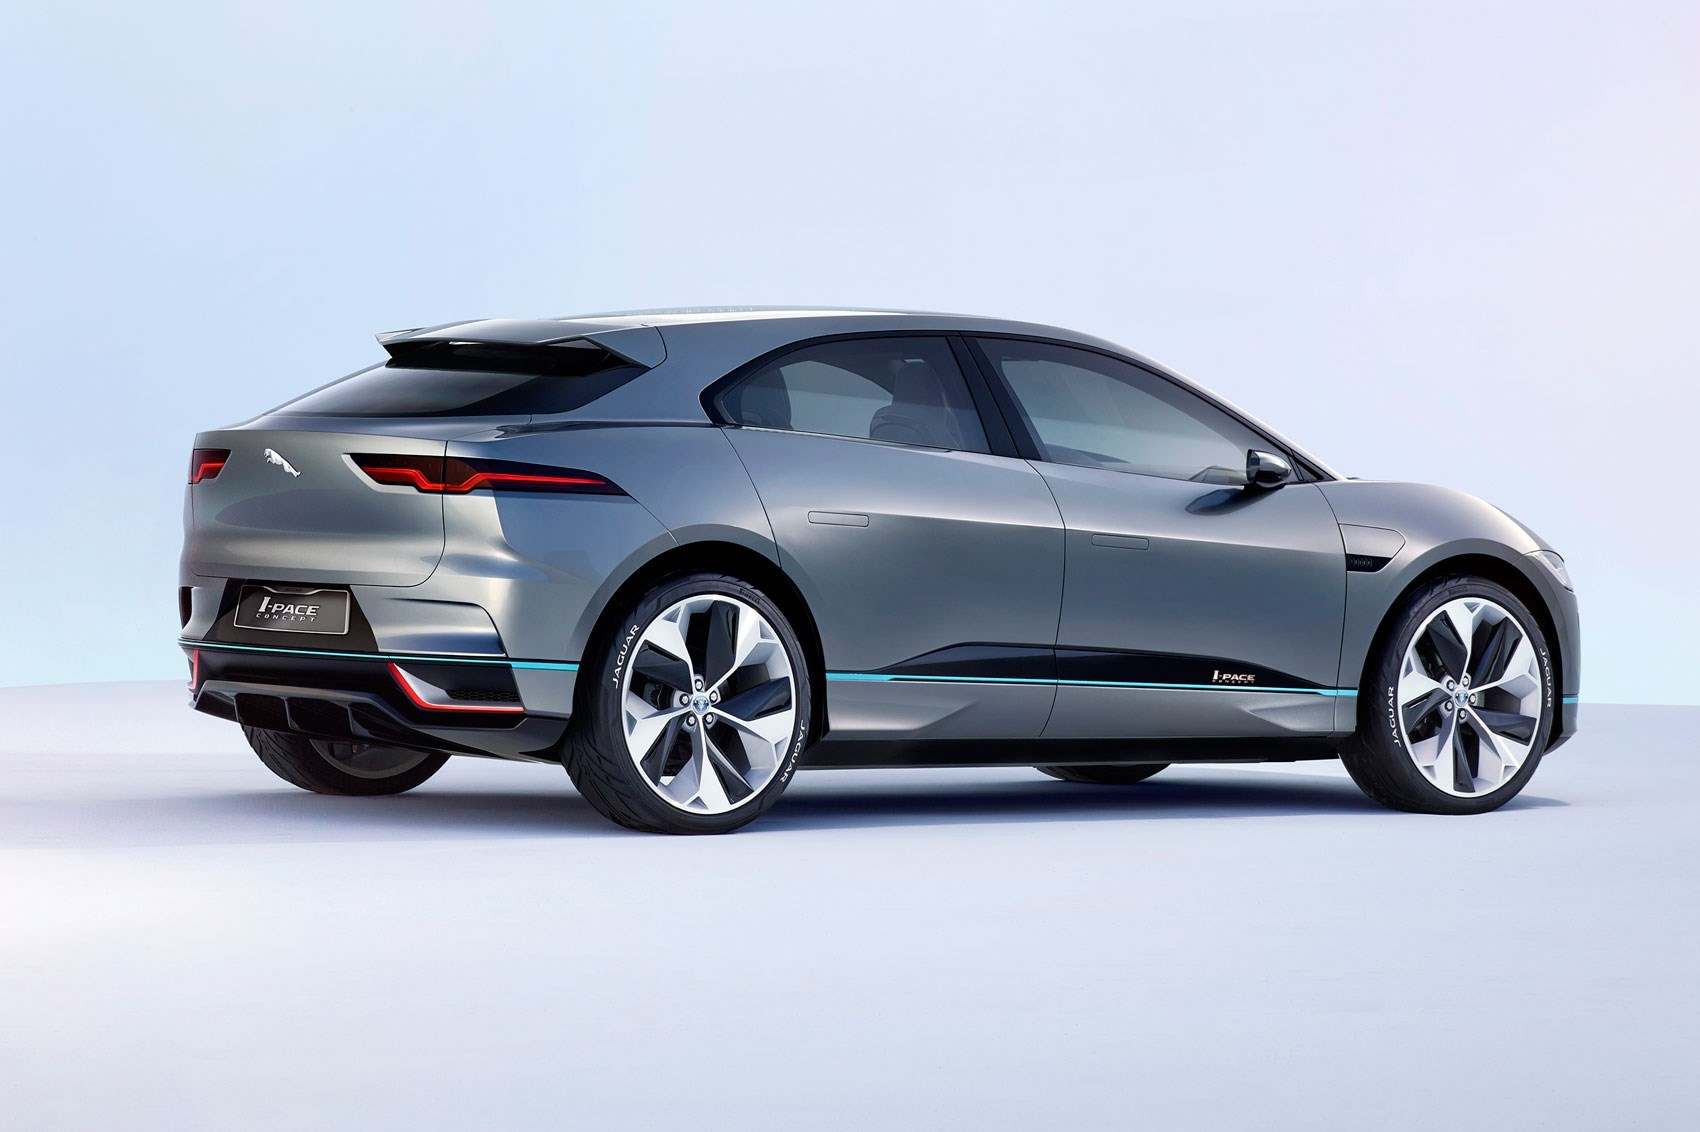 Superior Alpine Sports Car: Itu0027s French For Sporty In 2017 Jaguar I Pace: The  Electric Jag Crossover ...